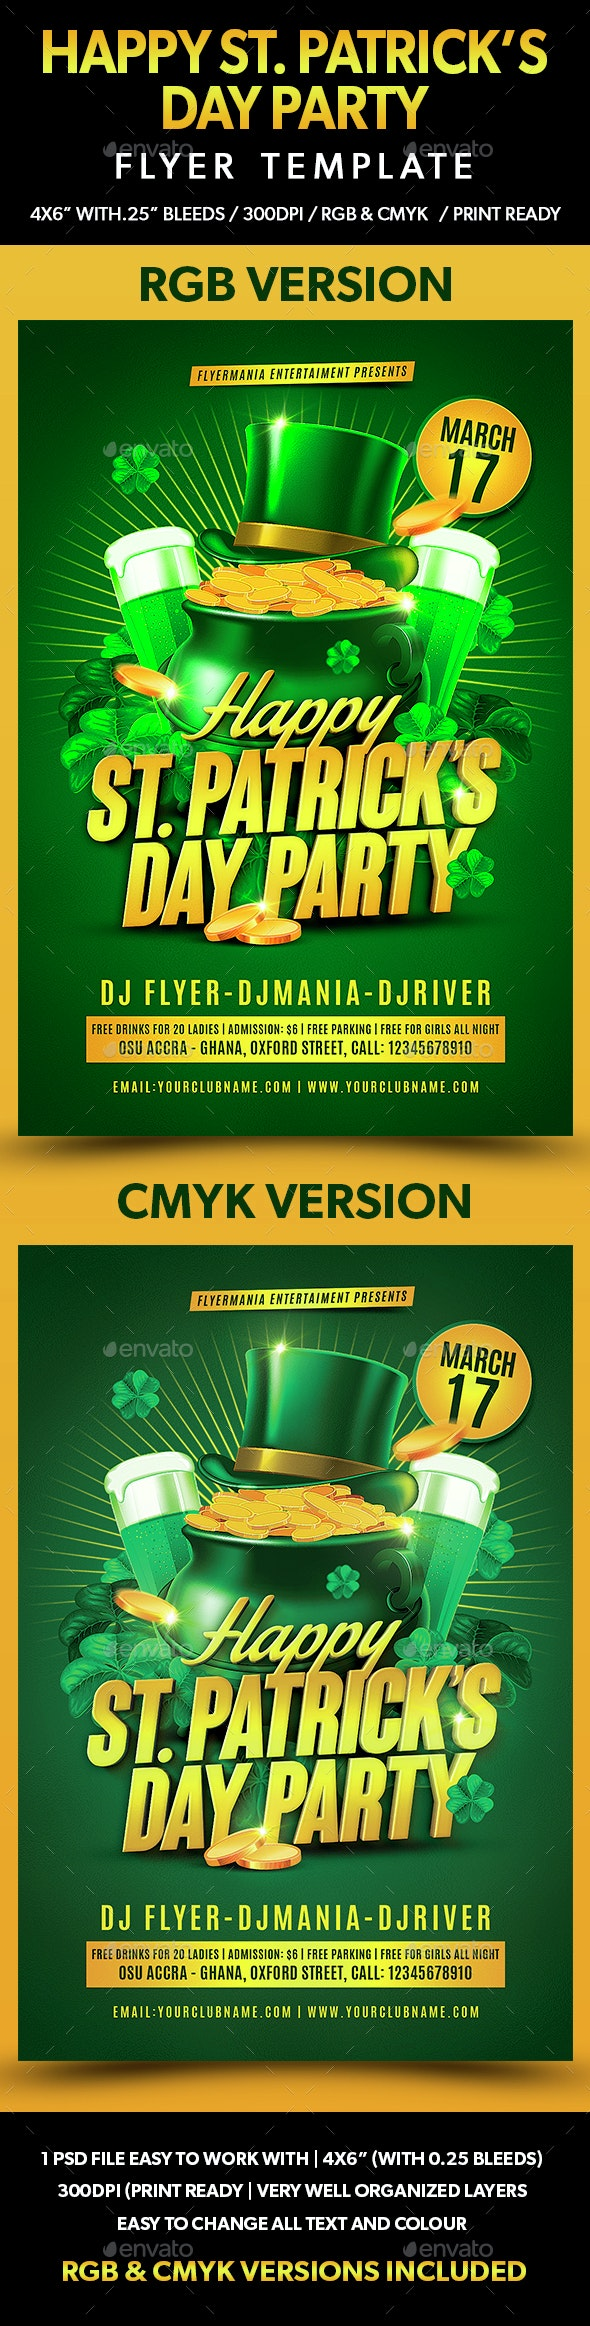 Happy St. Patrick's Day Party Flyer Template - Flyers Print Templates